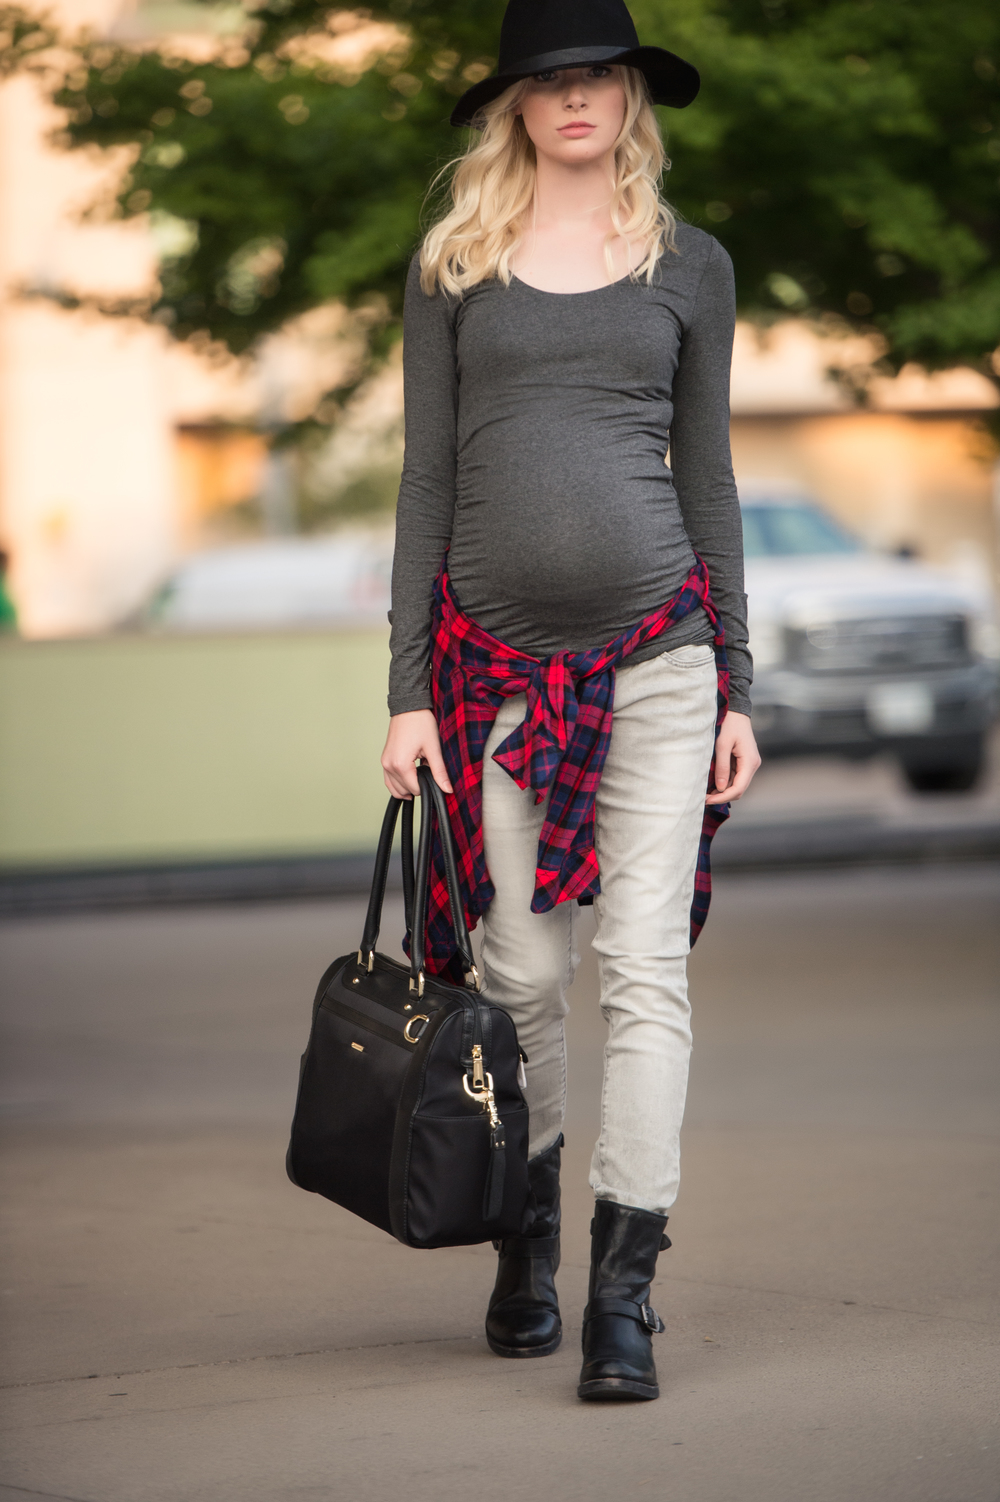 Looking stylish is easy during pregnancy with a great pair of jeans